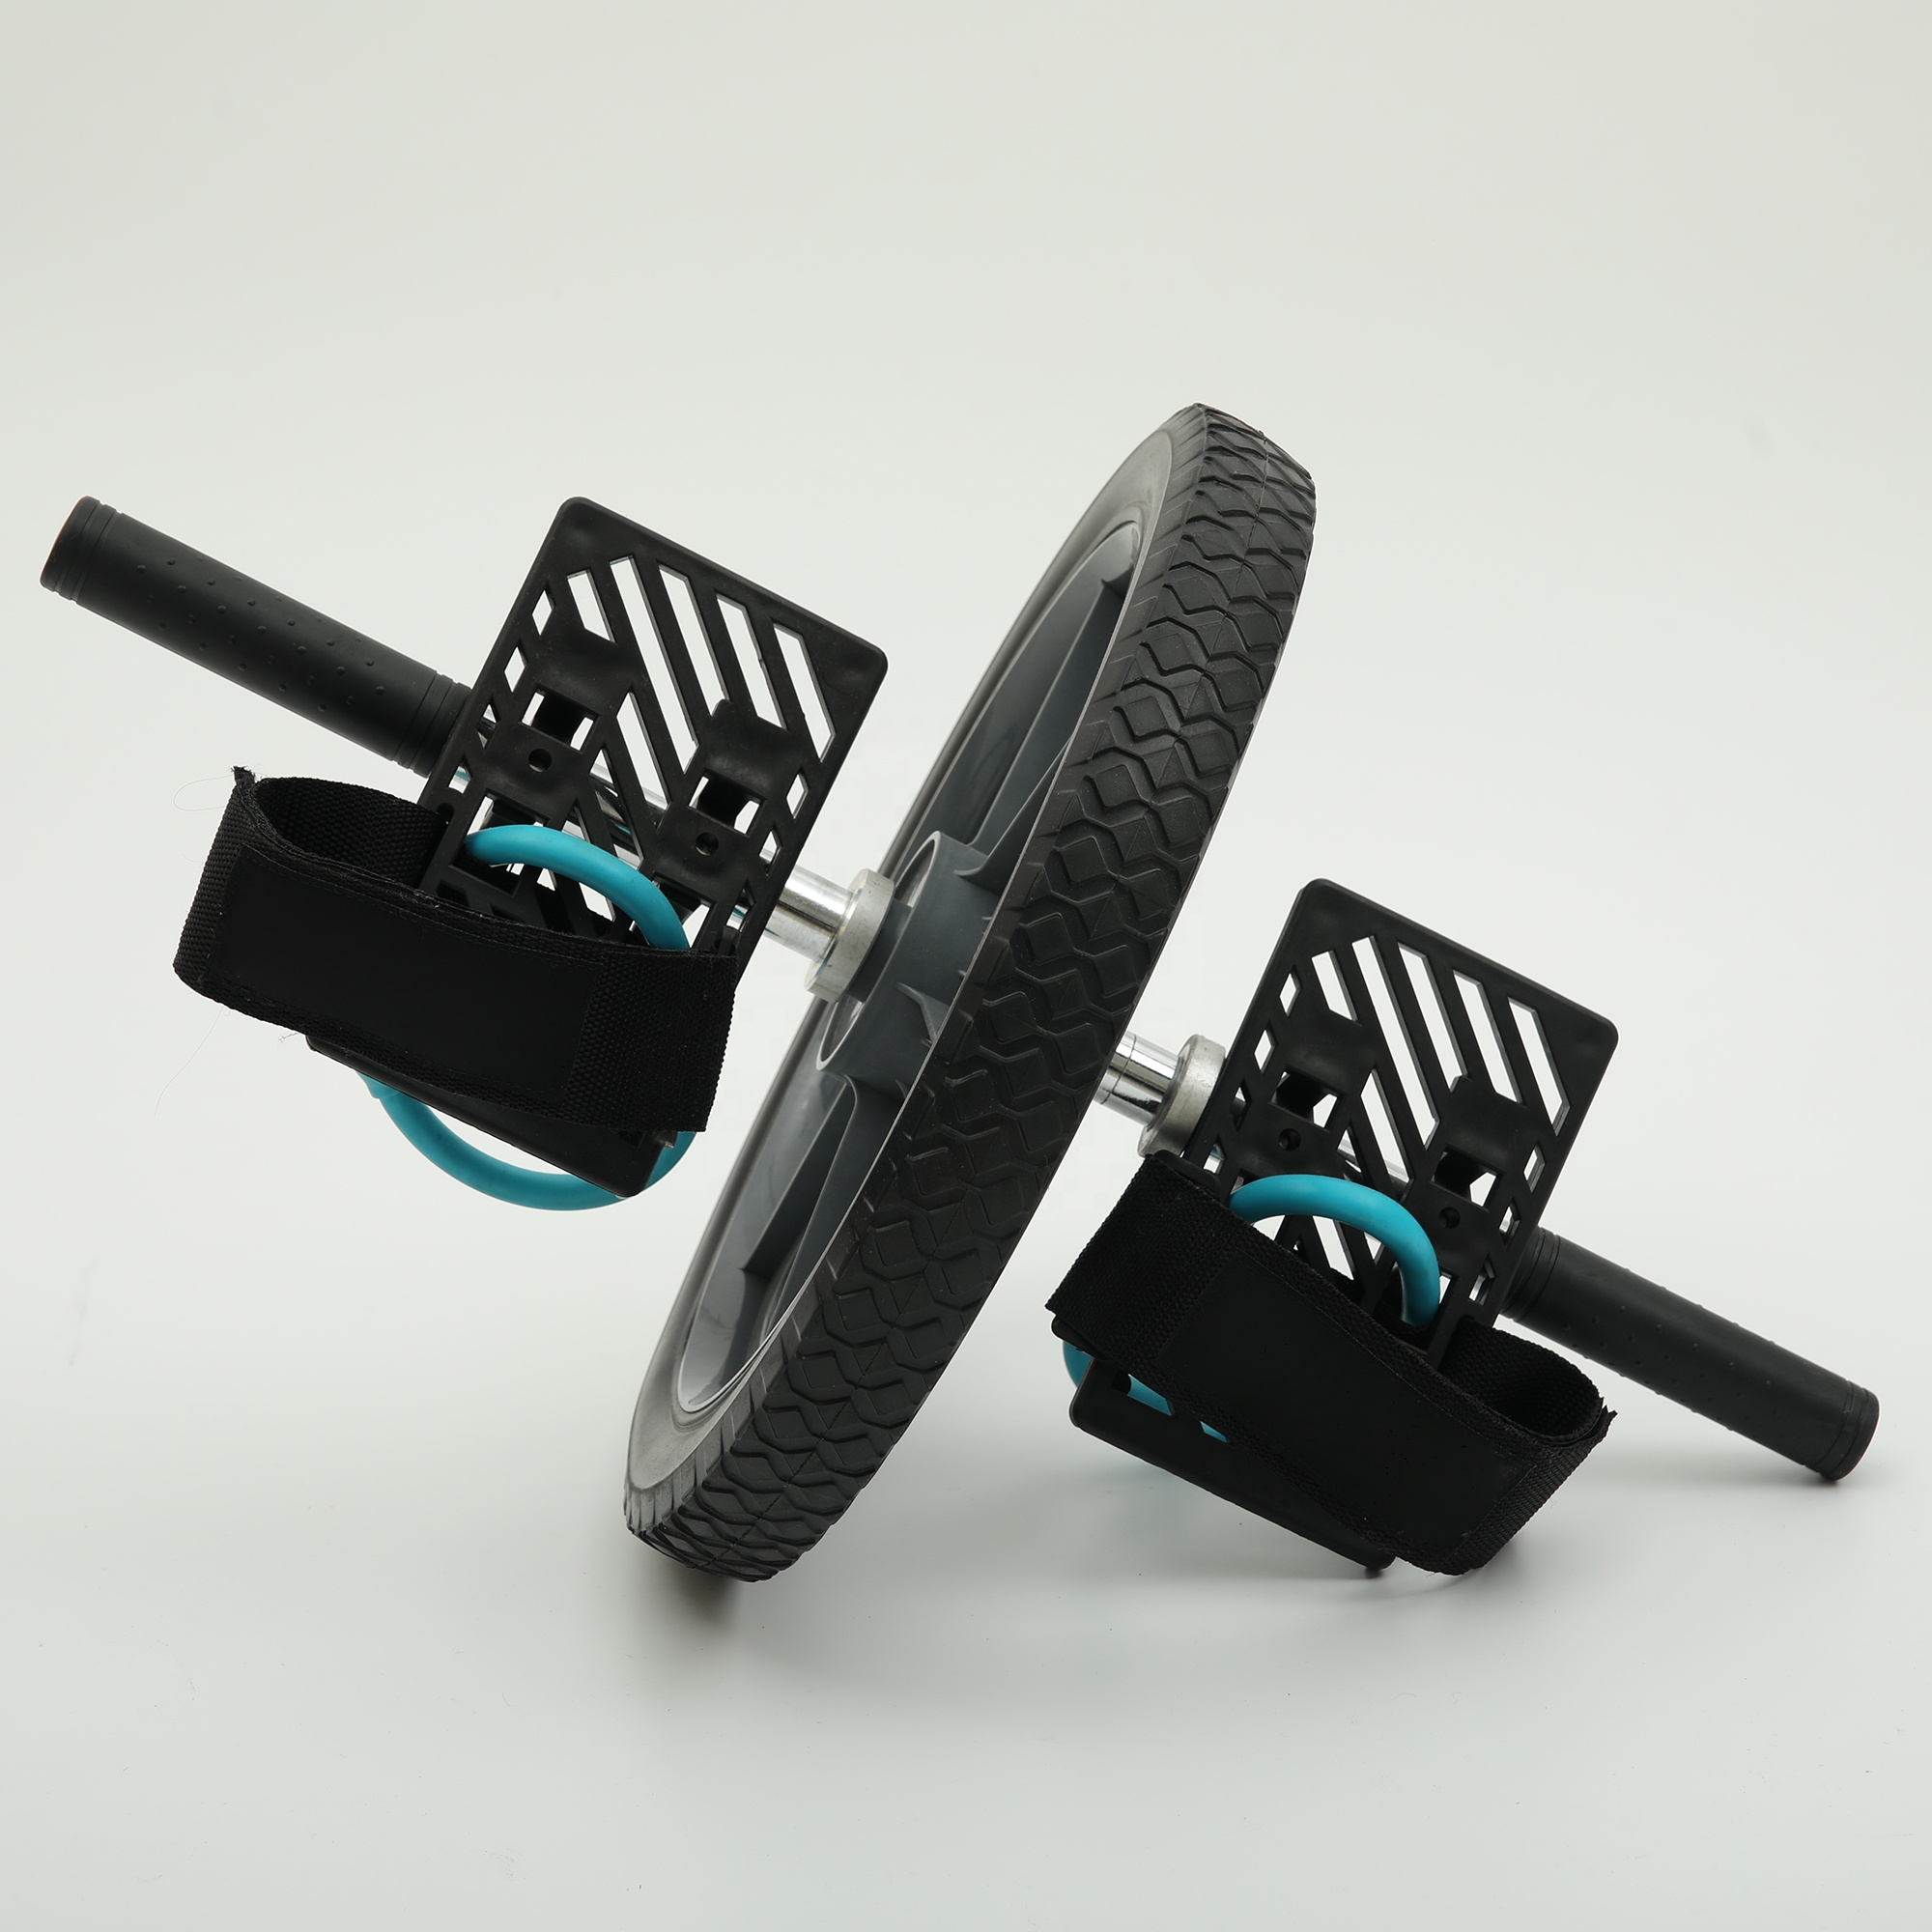 2019 Hot sale Dual Ab/ABS Wheel For Abdominal Roller Workout Exercise <strong>Fitness</strong>